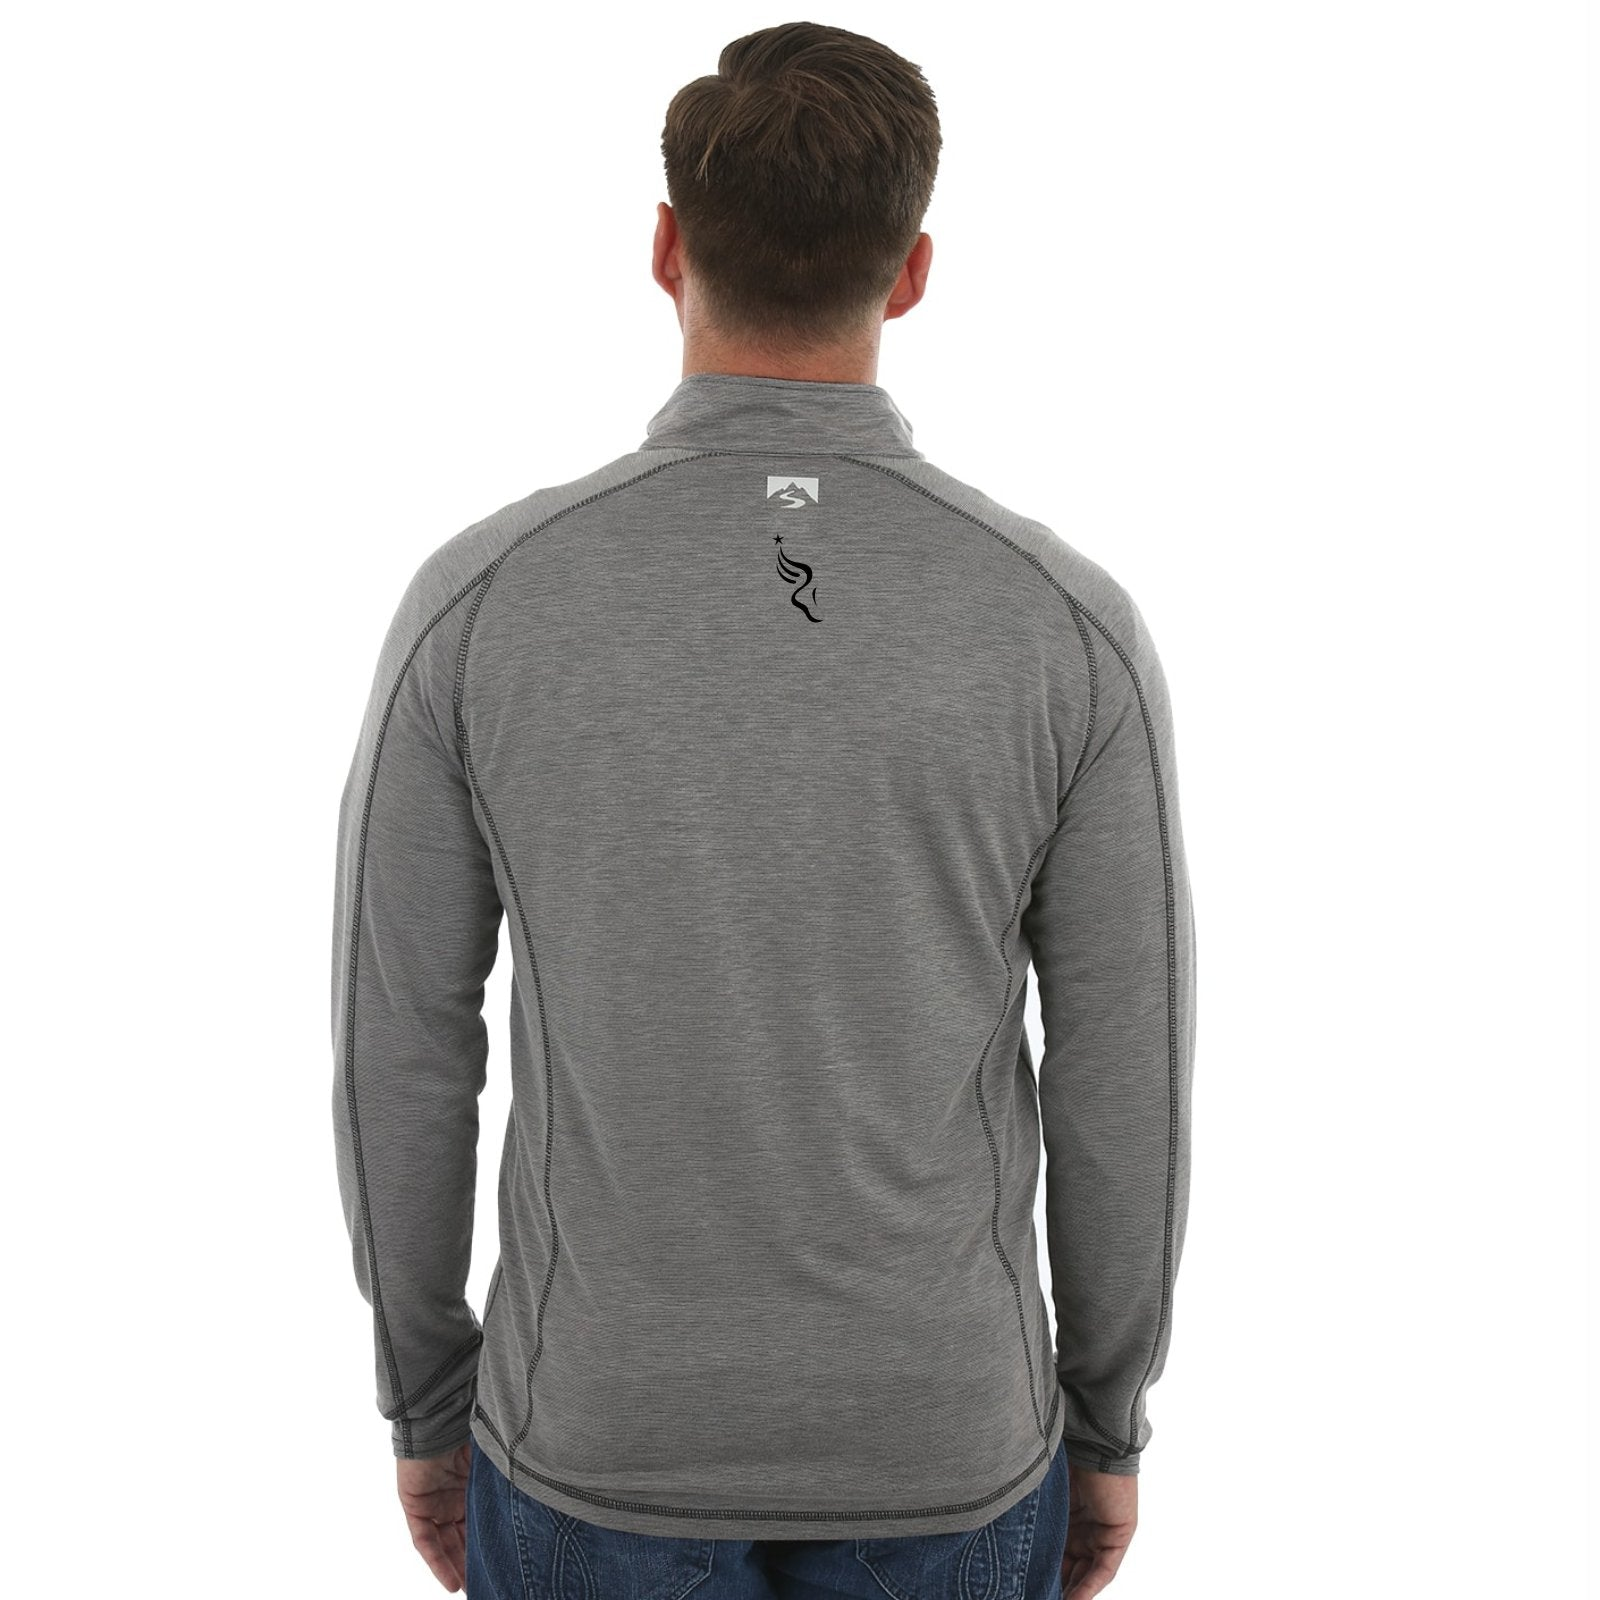 Men's Bamboo 1/4 Zip -Coal 'Left Chest Embr. Design' - AACR Philadelphia Marathon